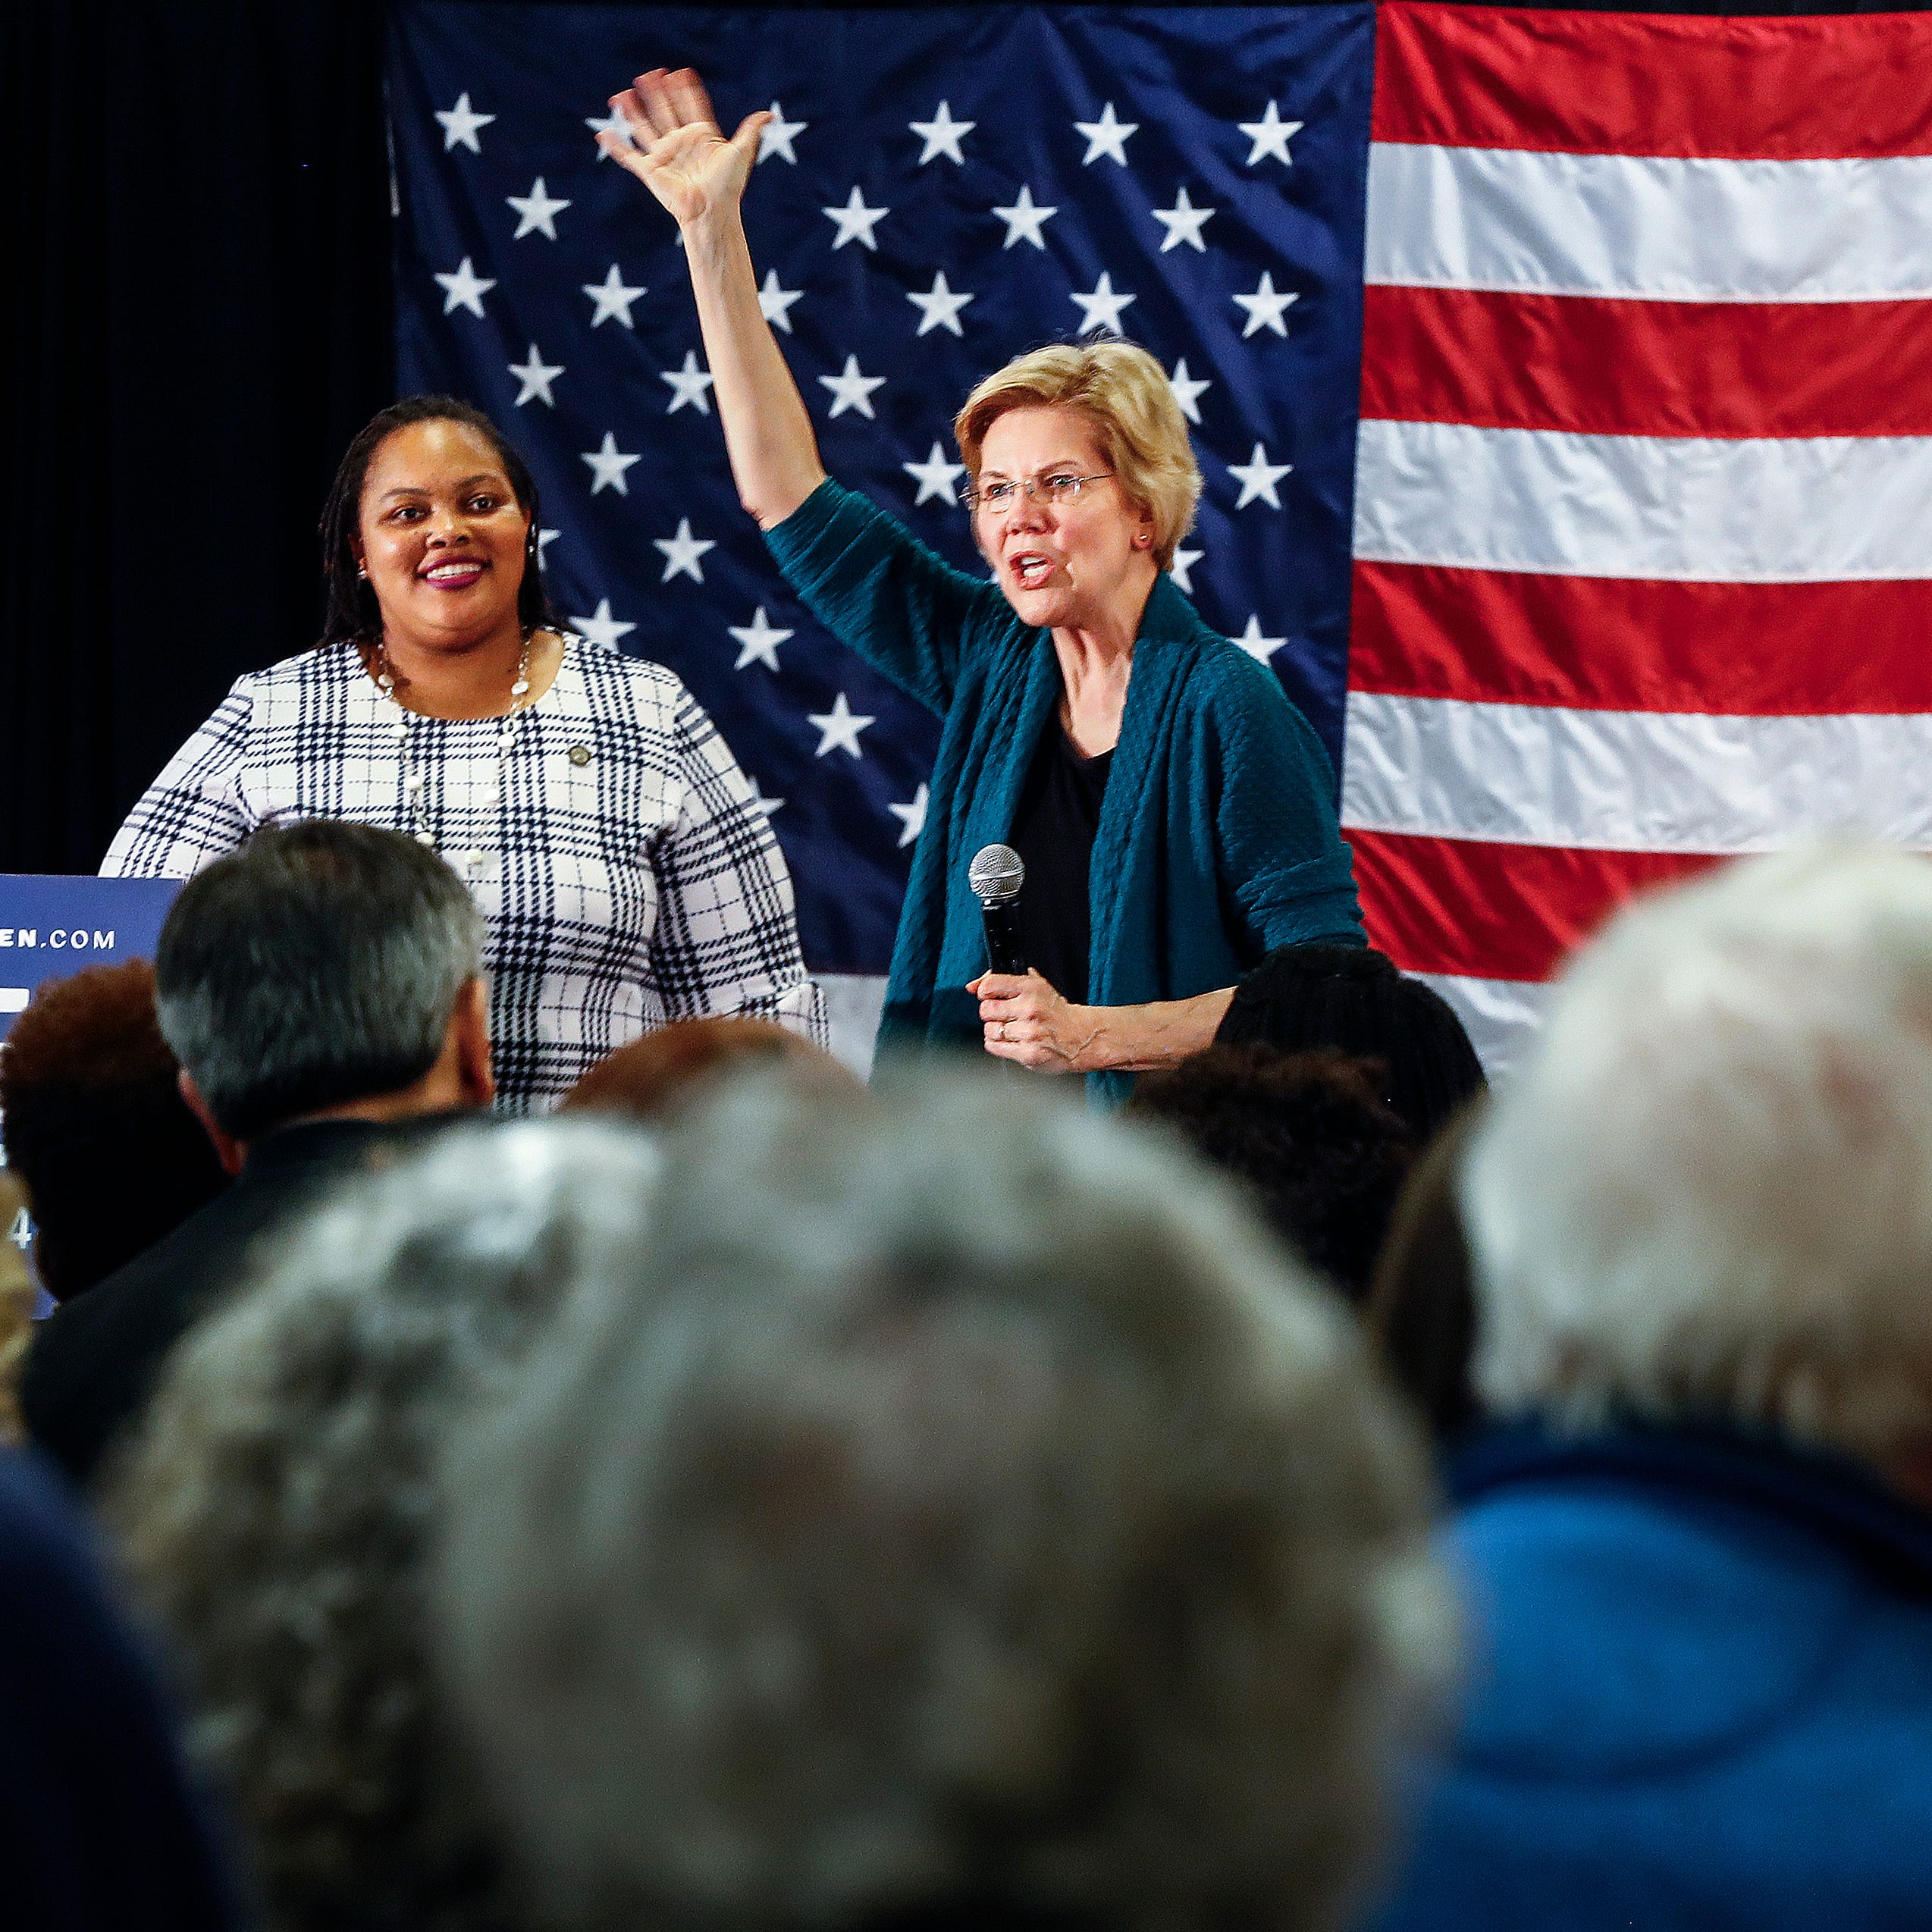 Presidential hopeful Elizabeth Warren campaigns in Memphis, kicking off three-state tour